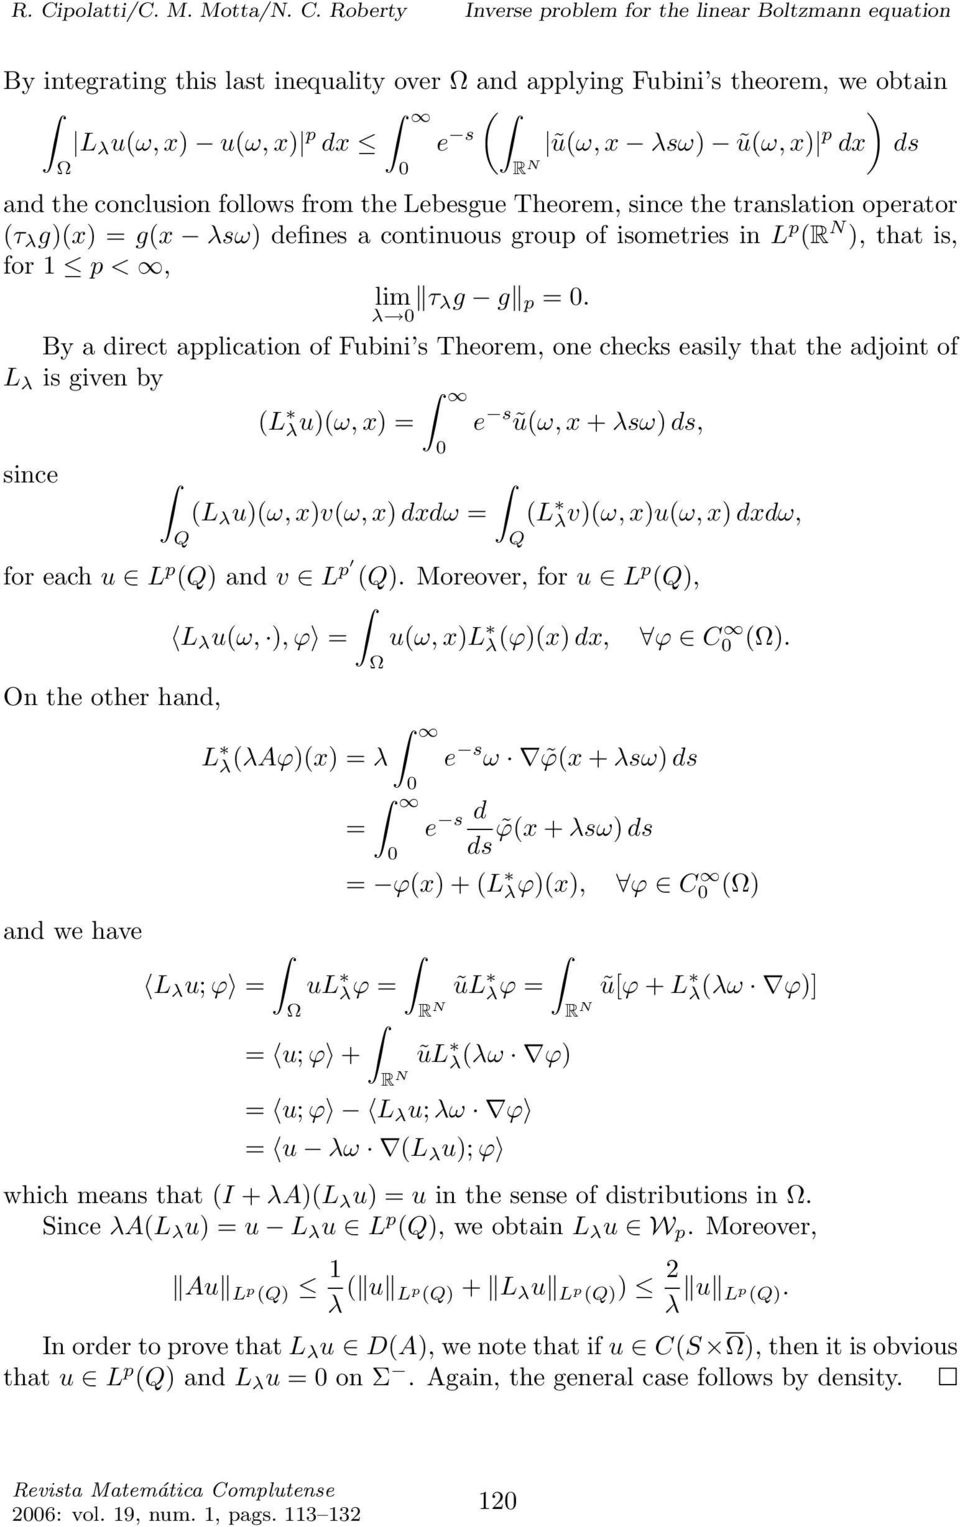 λ By a direct application of Fubini s Theorem, one checks easily that the adjoint of L λ is given by (L λu)(ω, x) = e s ũ(ω, x + λsω) ds, since (L λ u)(ω, x)v(ω, x) dxdω = (L λv)(ω, x)u(ω, x) dxdω,